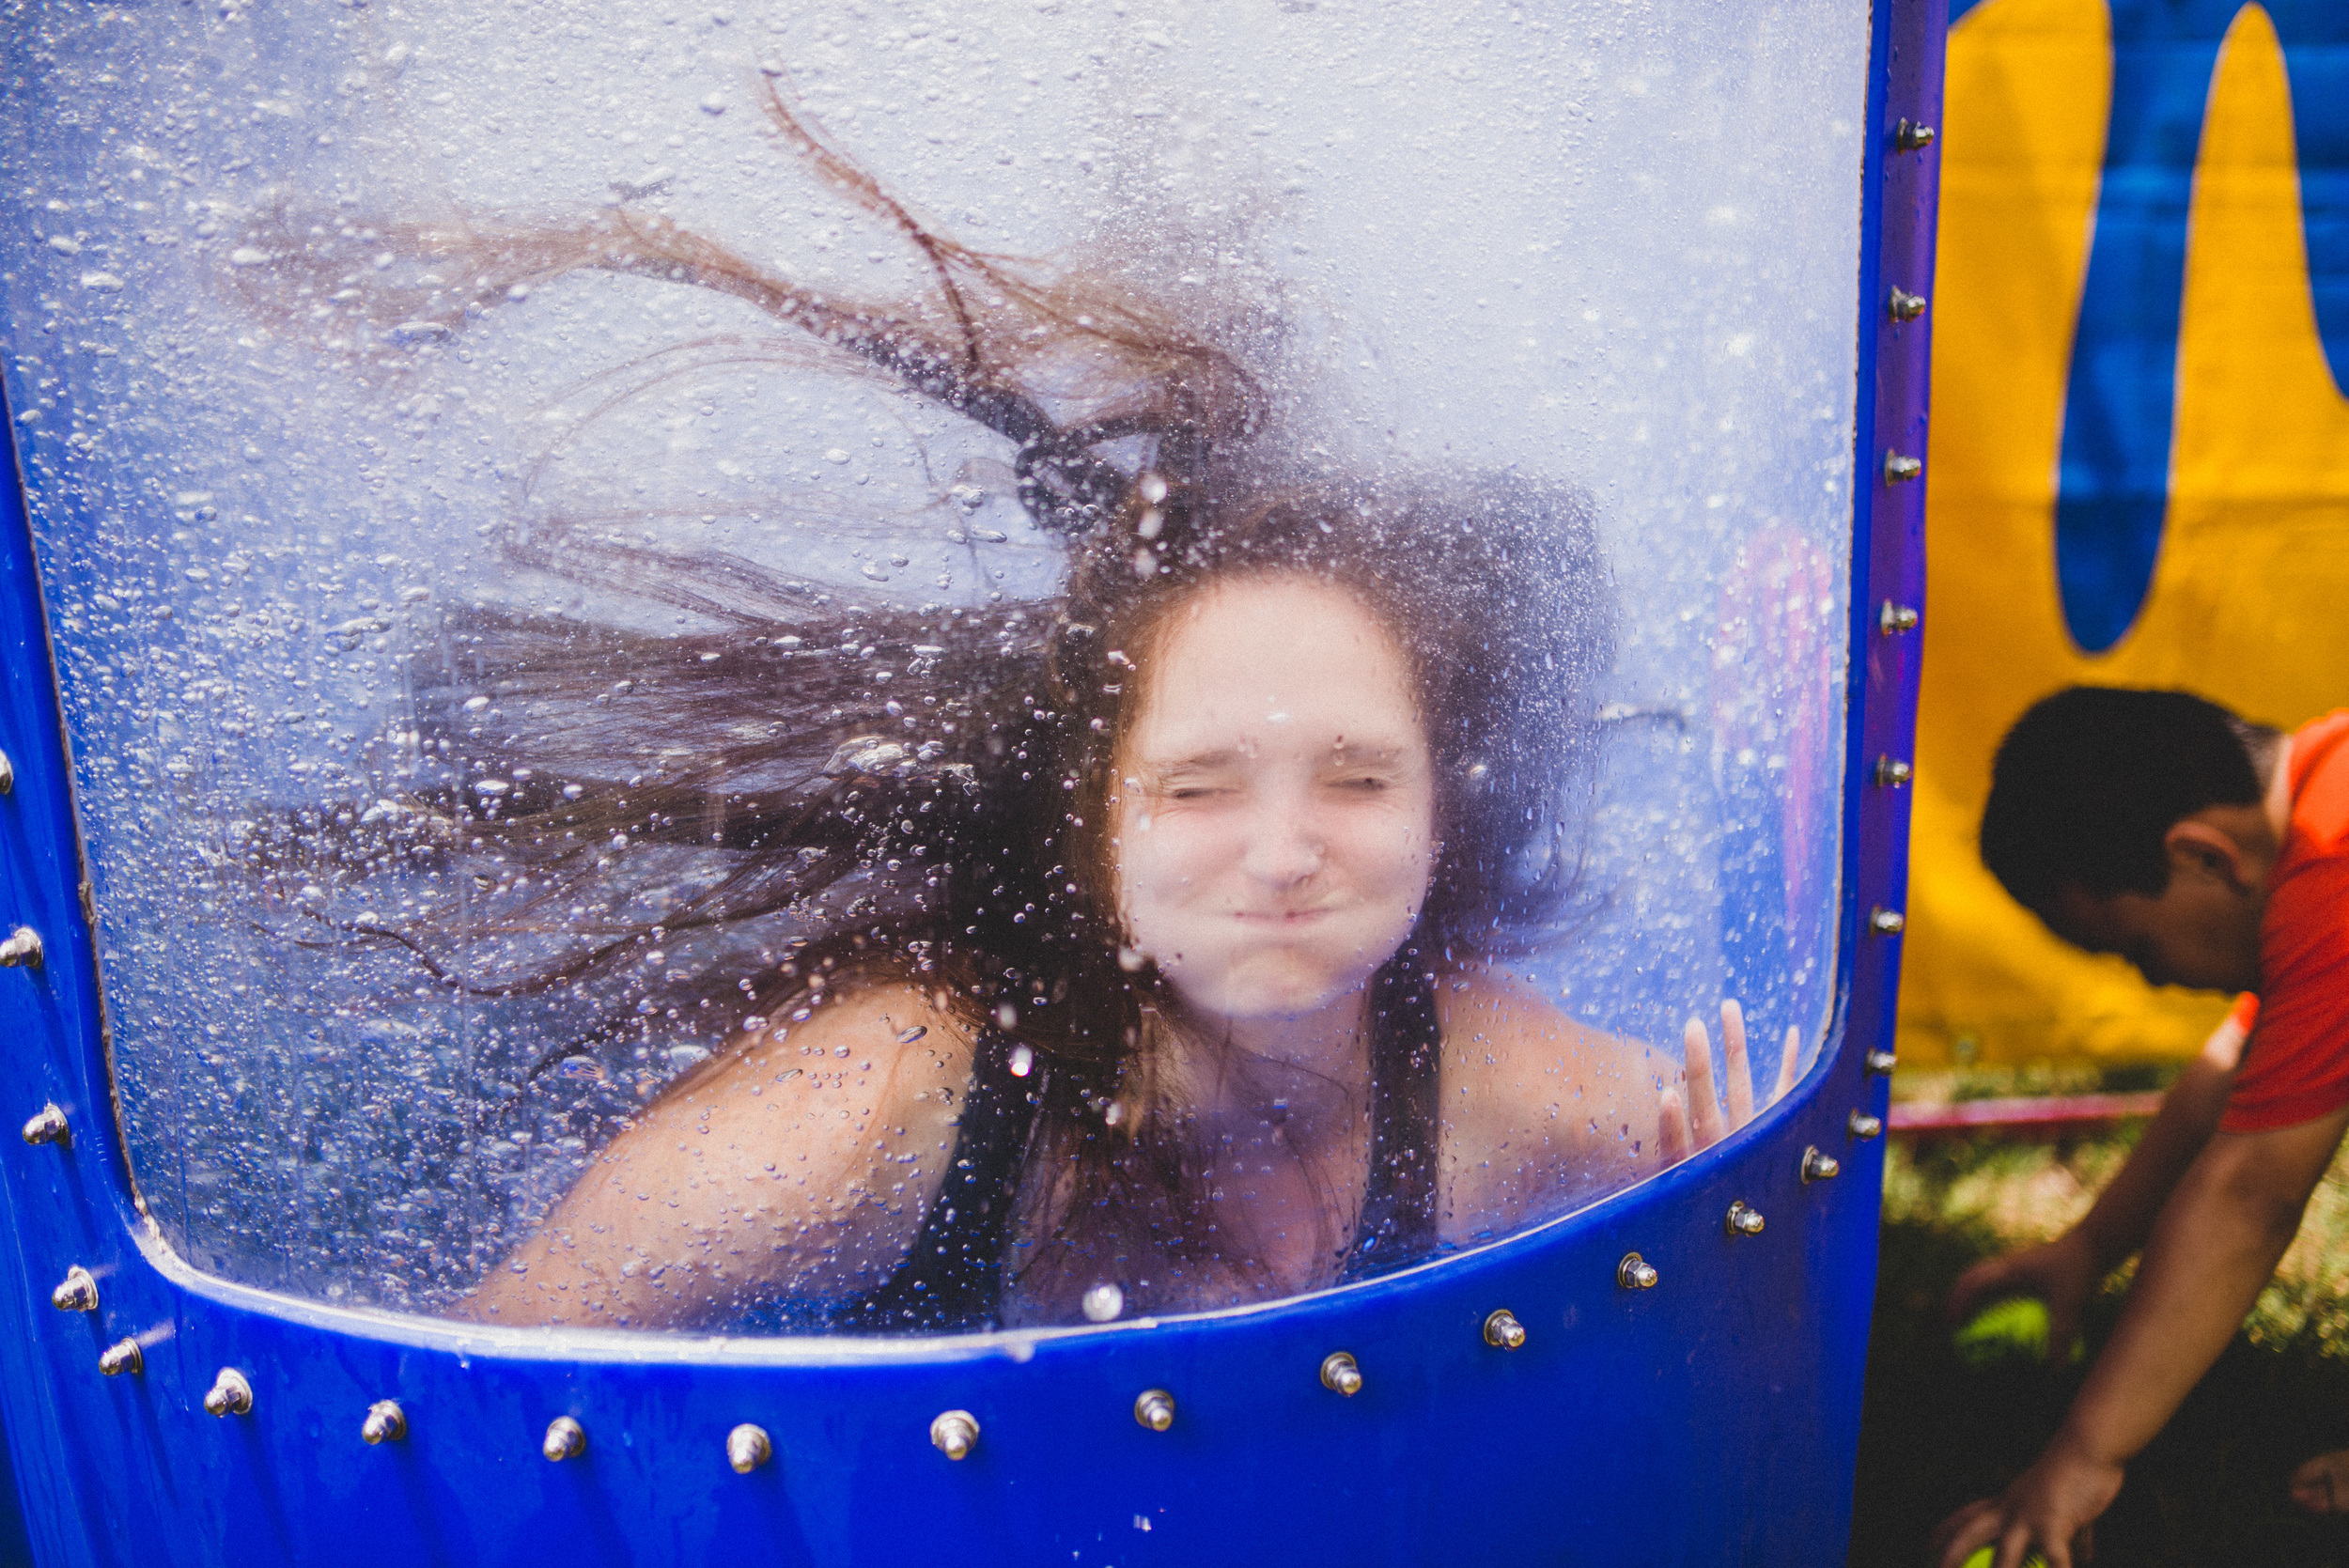 You'd be mistaken to think her joy was because of the cool water on a hot day. Coordinator Stefanie Price smiles because she knows that just outside the dunk tank, her campers are safe, feel loved, and are hysterically laughing. That is the job of a Camp Skillz coordinator, and they don't smile until that job is done.